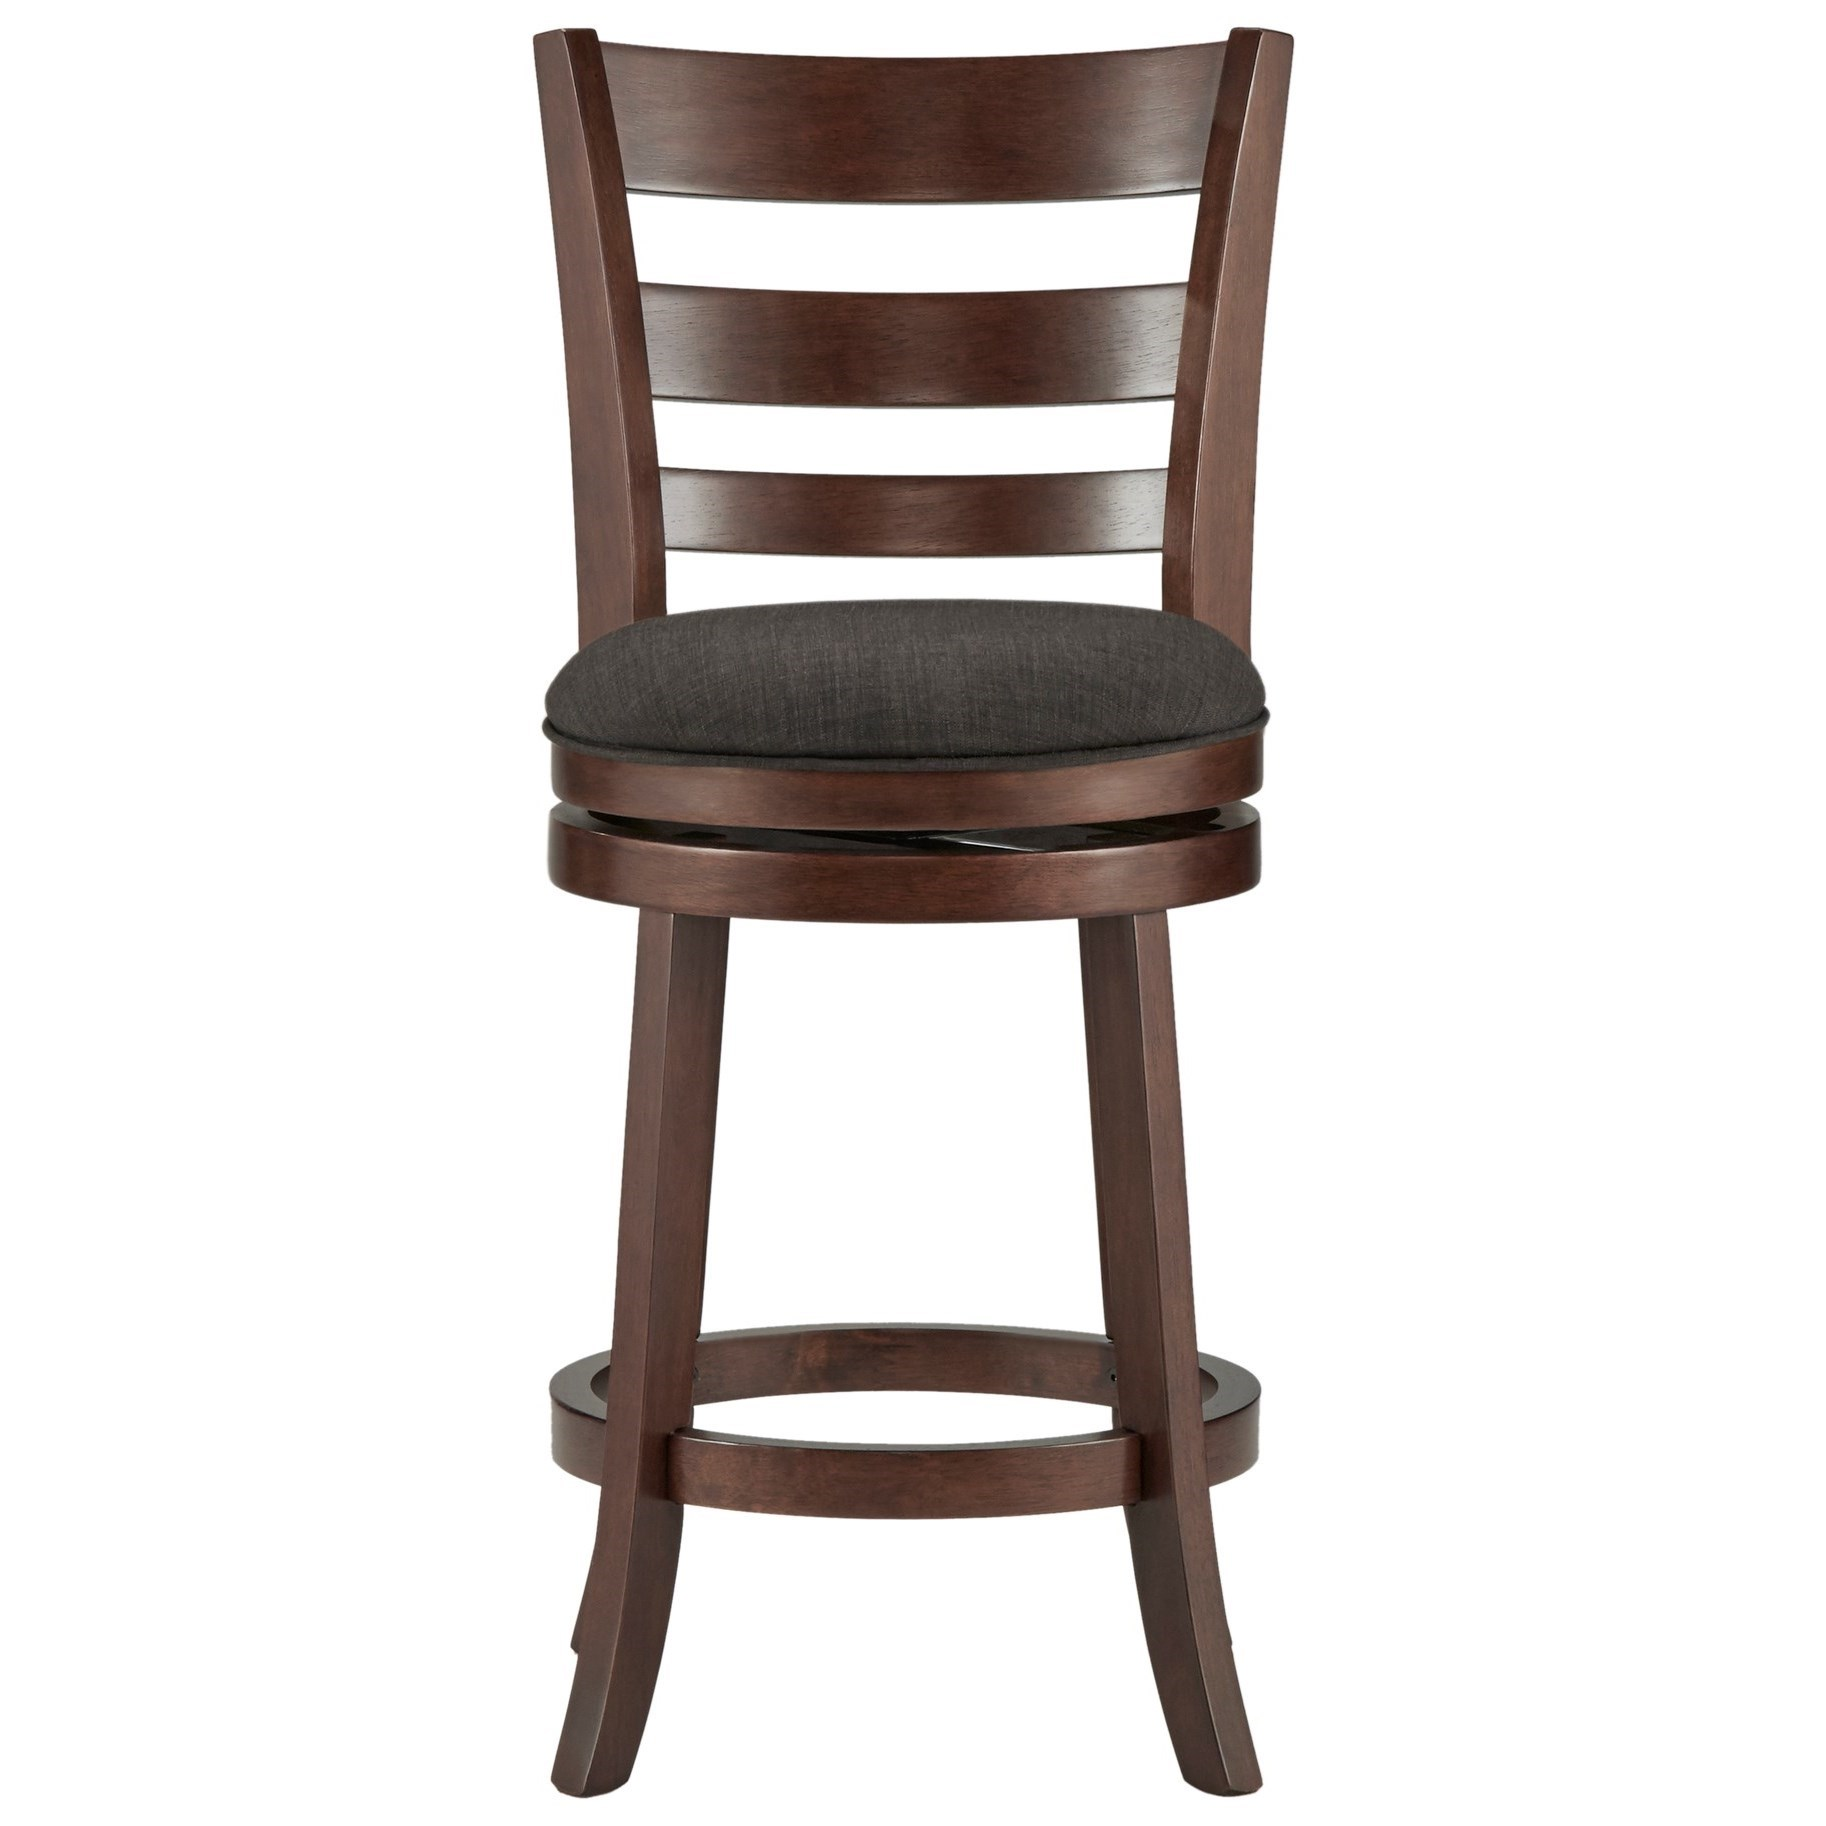 Homelegance Edmond 1144e 24s Counter Height Swivel Stool